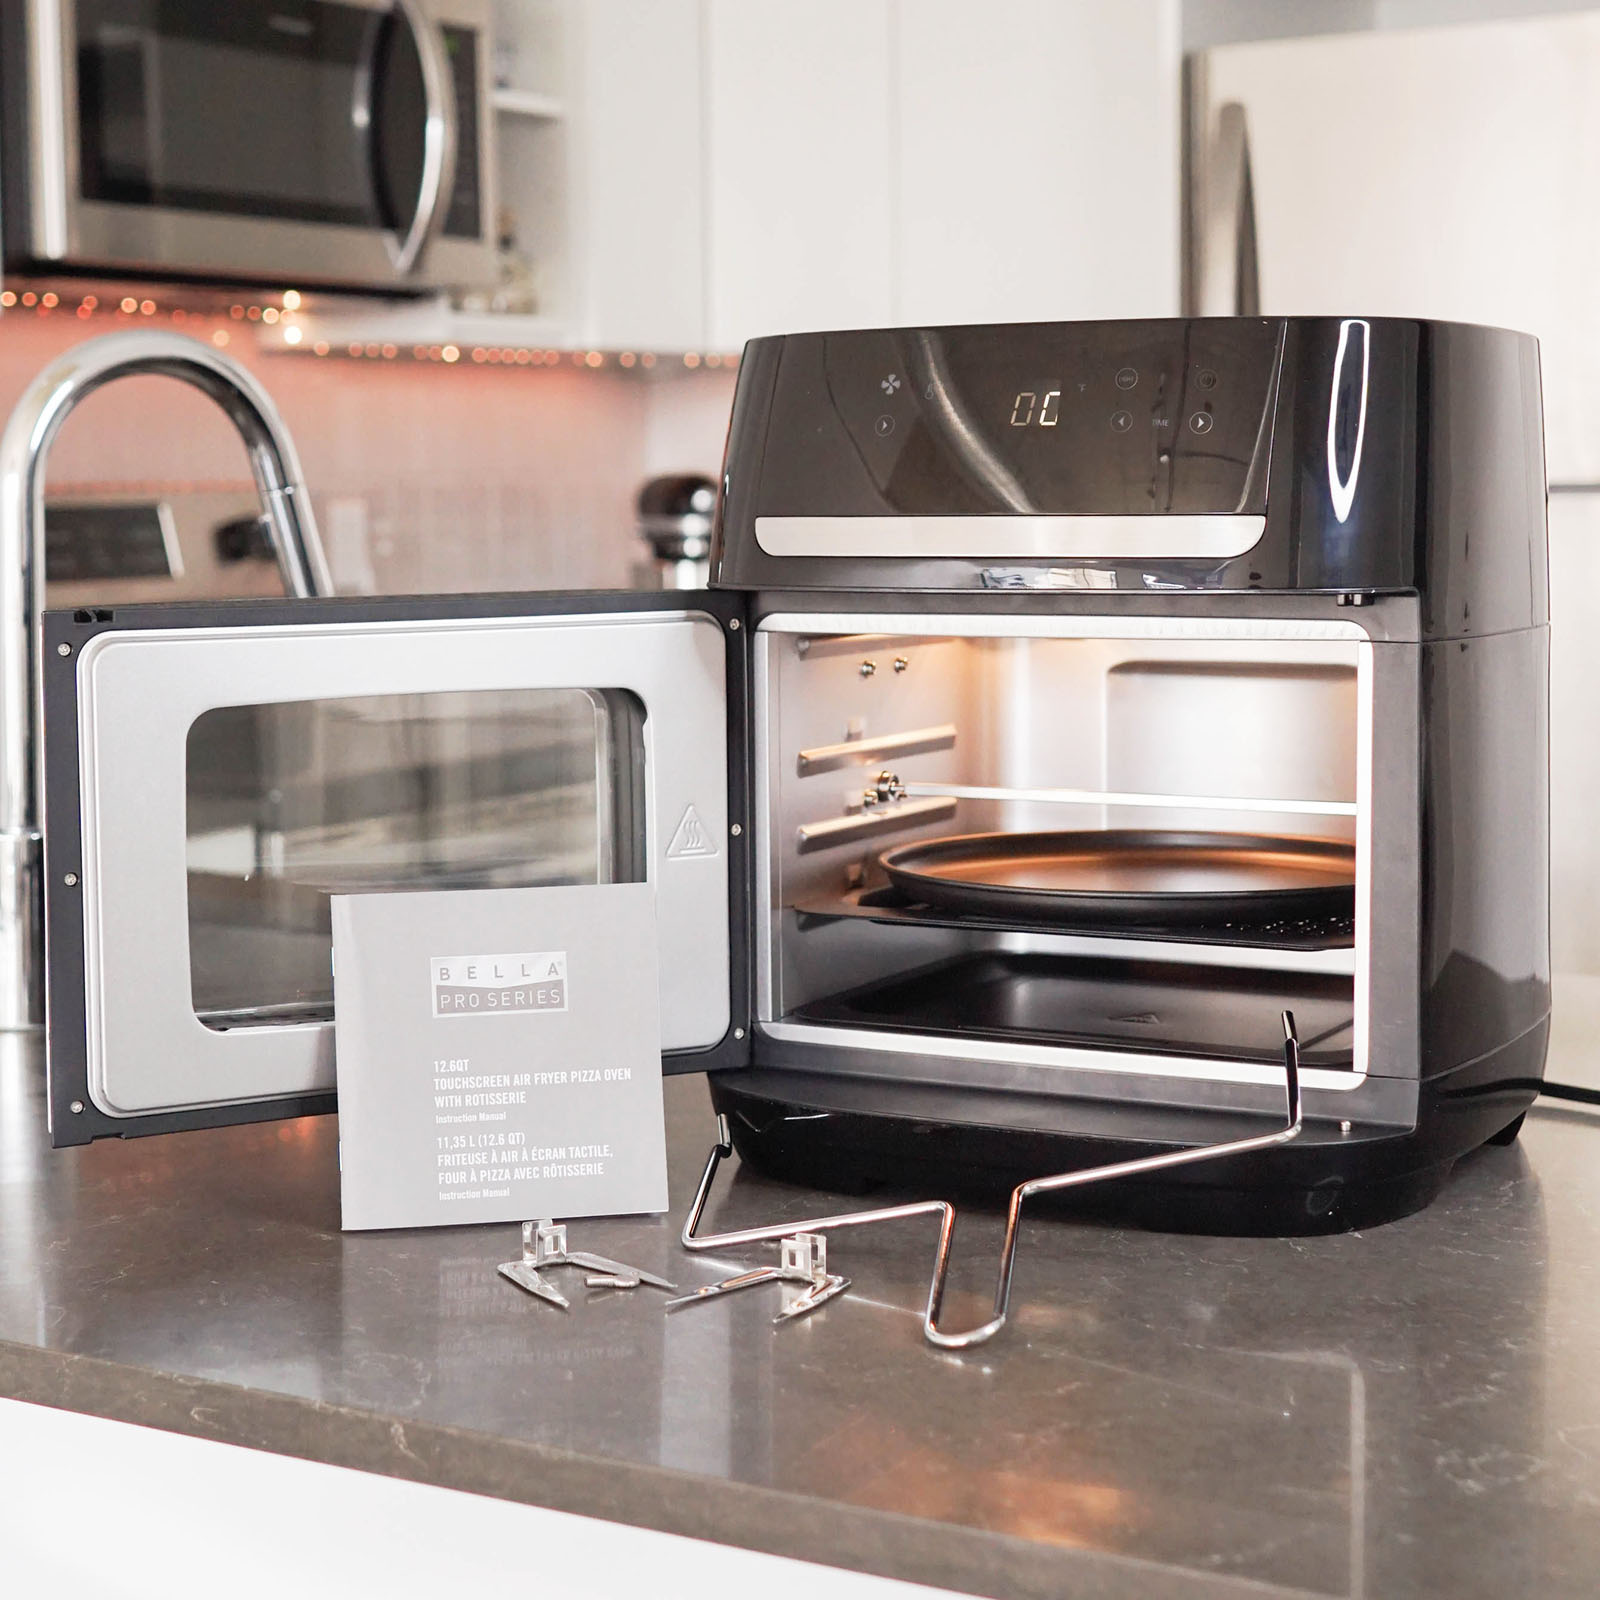 Bella Pro Air Fryer Pizza Oven with Rotisserie what's in the box